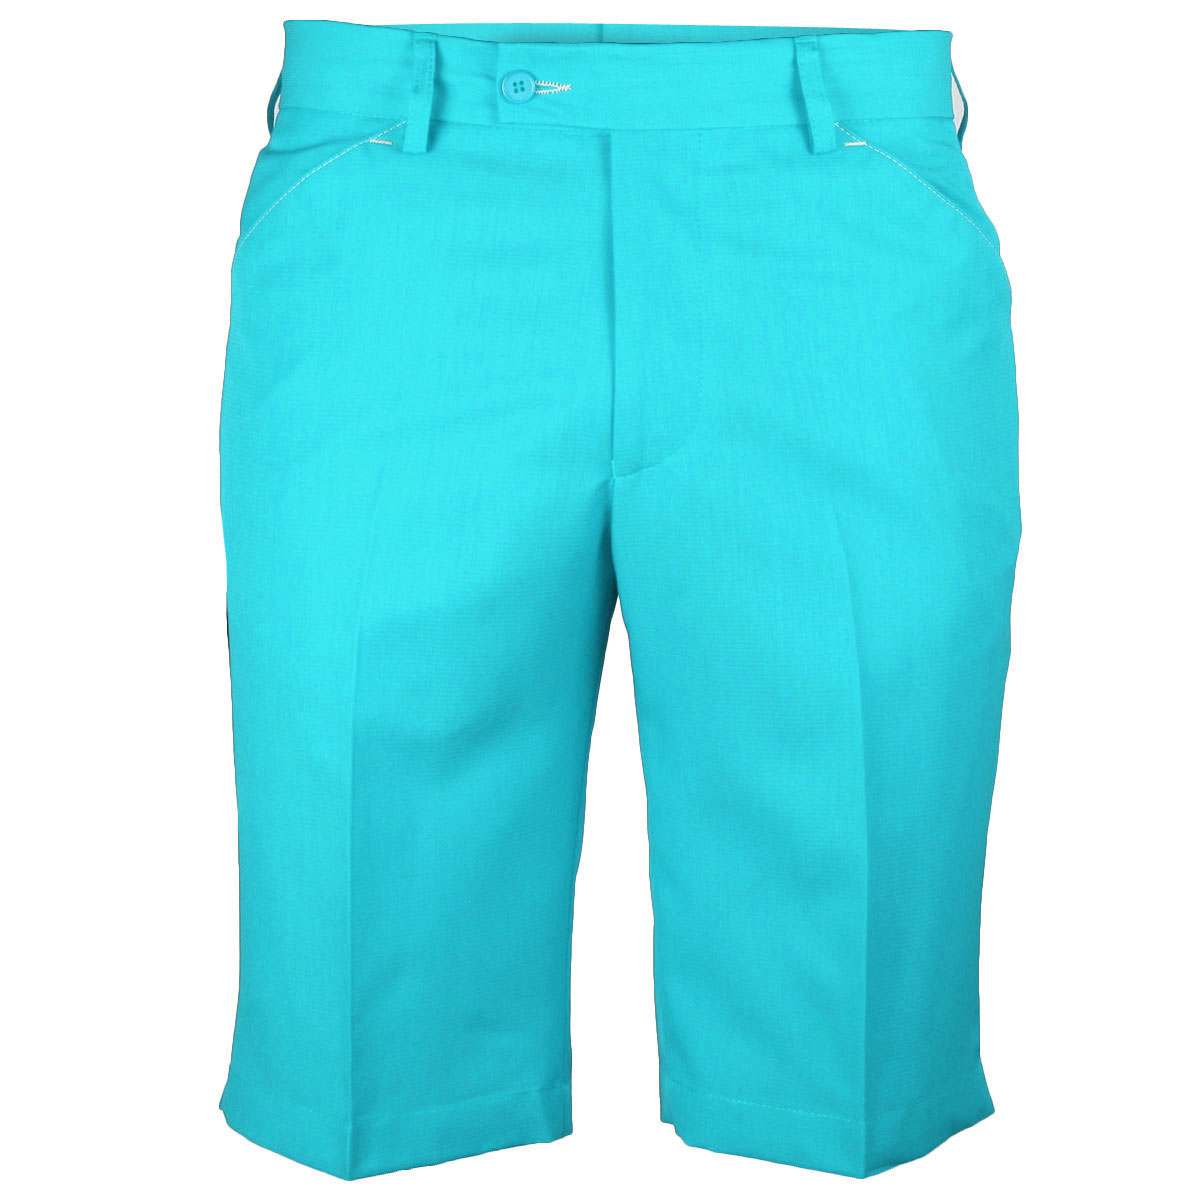 Shop men's pants and find everything from men's corduroy pants and khakis to chino pants and men's joggers. Ralph Lauren. Pants & Chinos Shorts & Swim Trunks Pajamas & Robes Underwear & Undershirts Tailored Shop. Back; Tailored Shop; Stretch Slim Fit Cotton Chino $ Take 30% off color (4) Polo Ralph Lauren Stretch Classic Fit Chino.